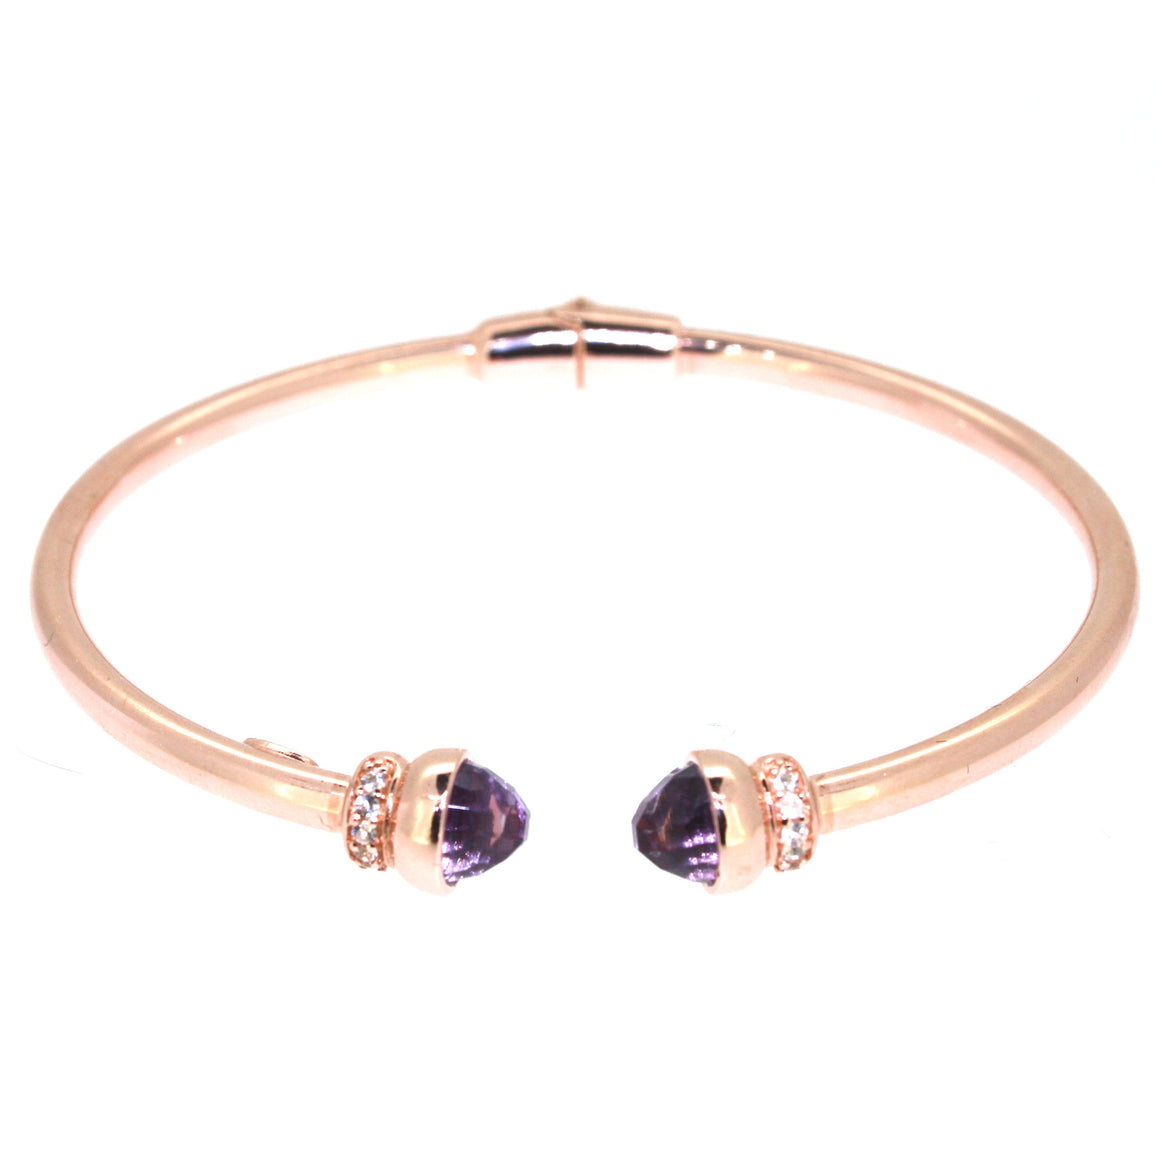 Inez Cuff  Purple Amethyst - 18K Rose Gold Plated on 925 Sterling Silver